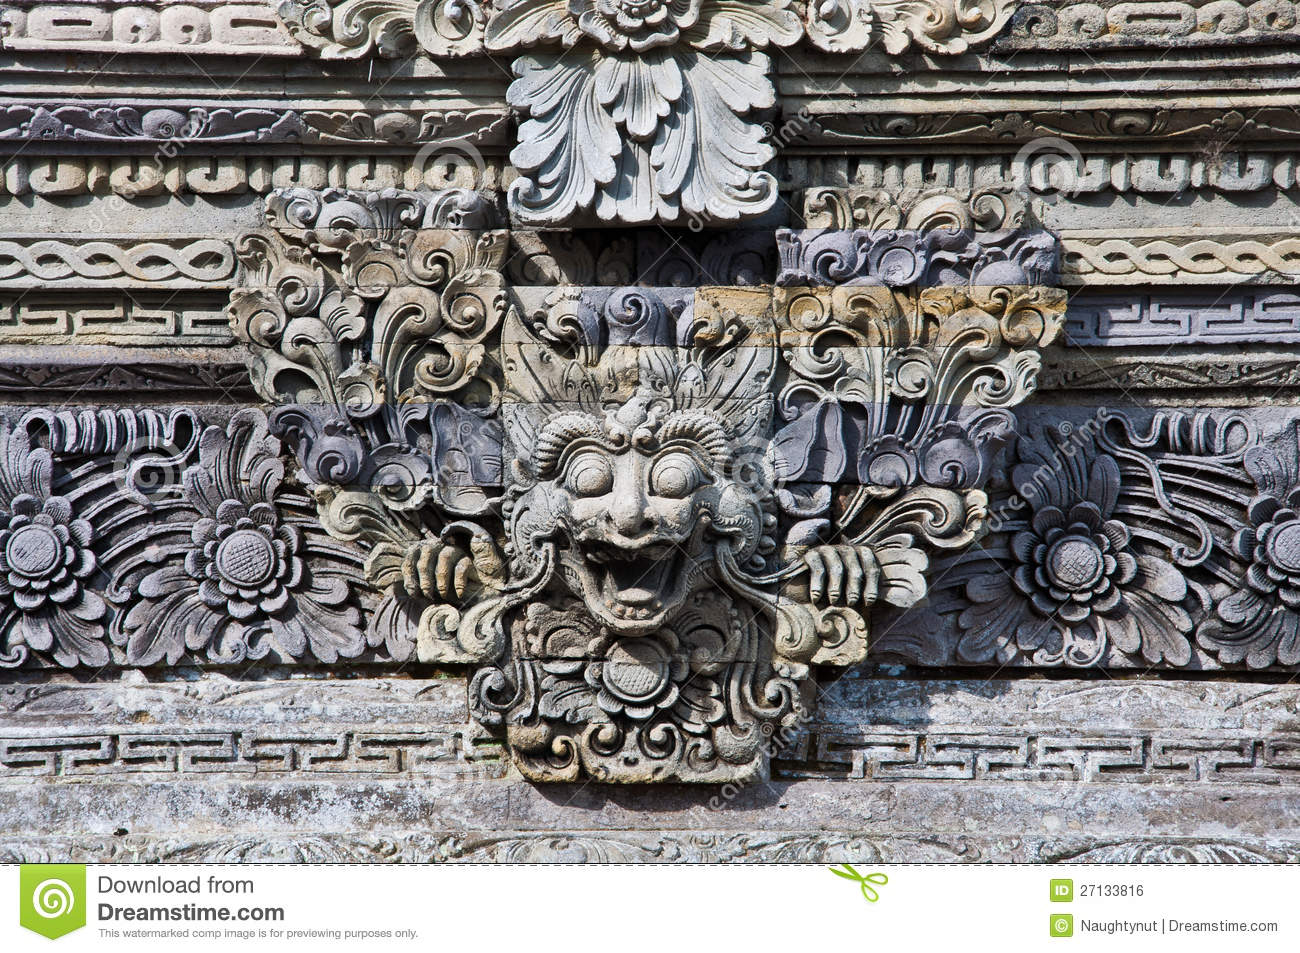 Bali stone sculpture royalty free stock image